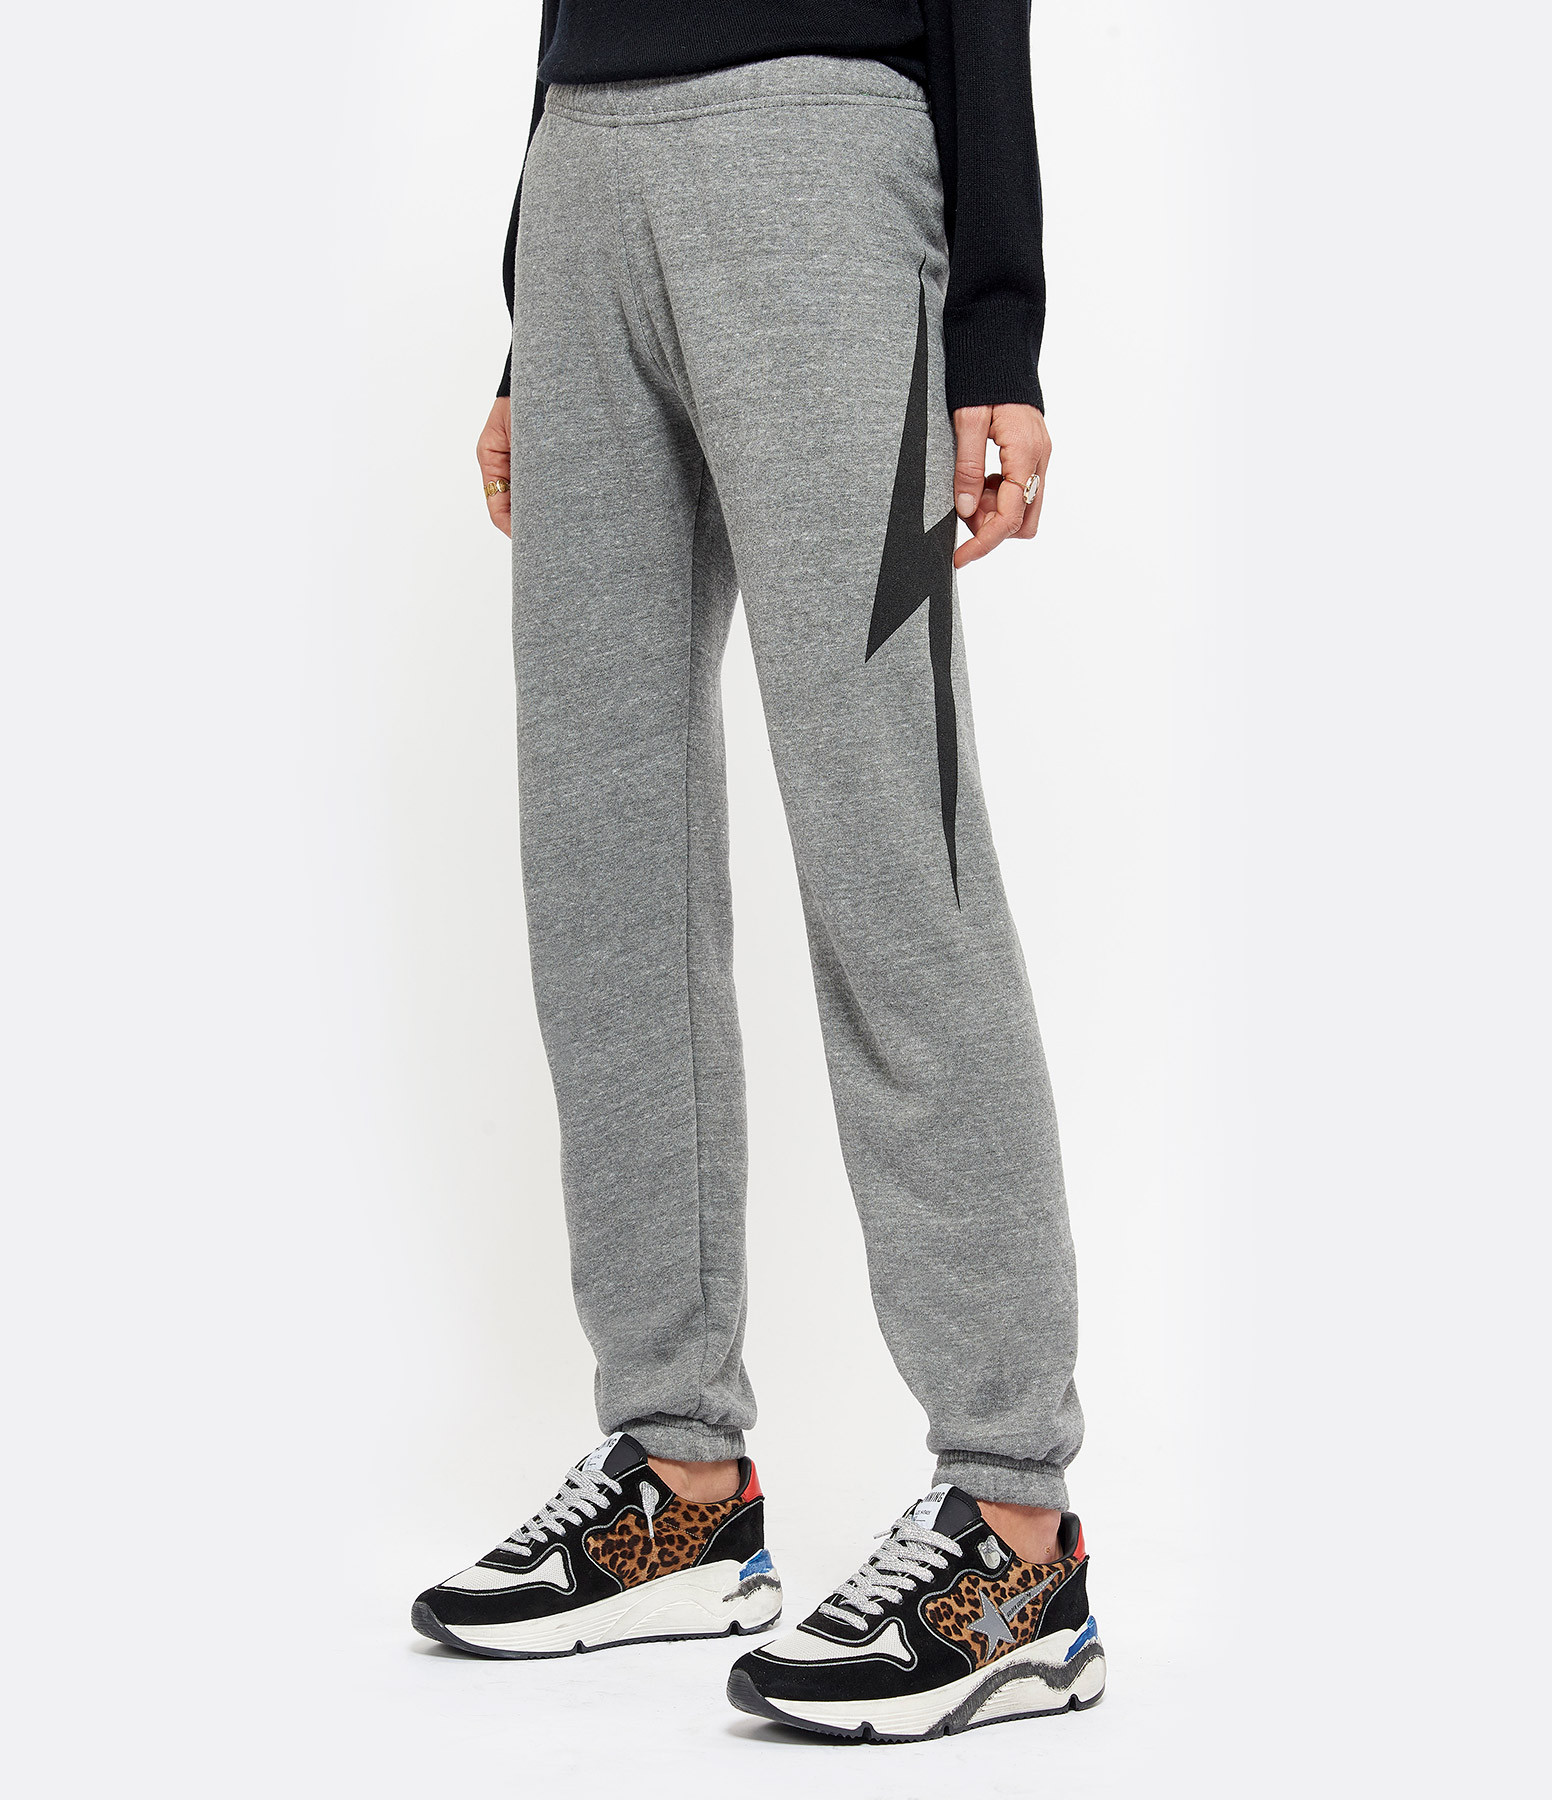 AVIATOR NATION - Jogging Bolt Coton Gris Chiné